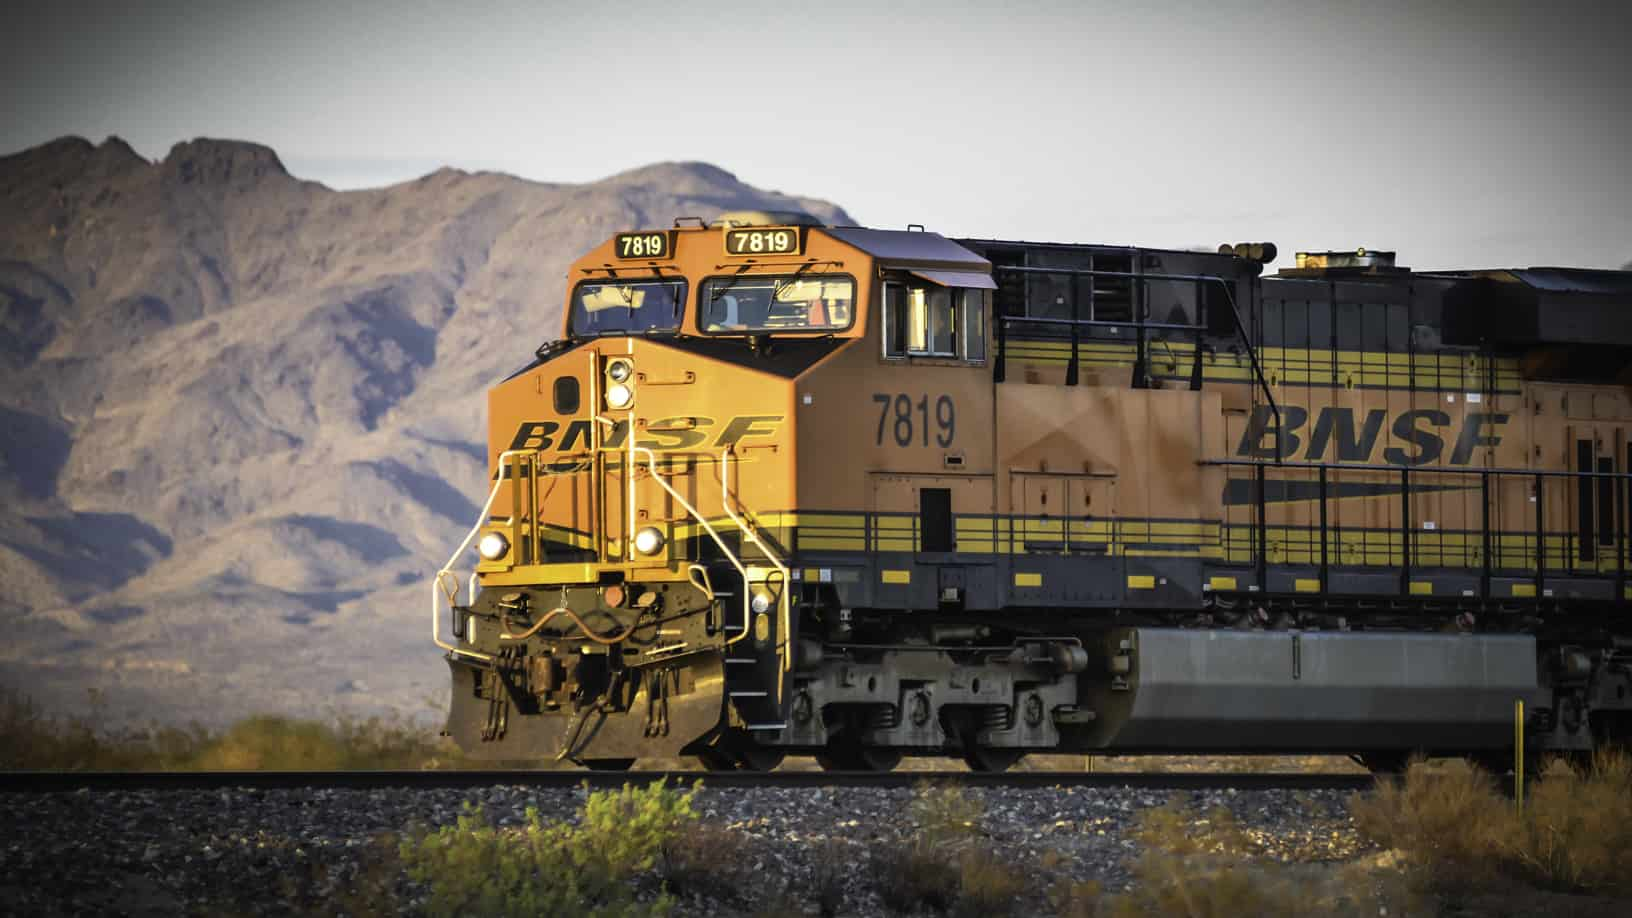 Freight Trains Are Our Future